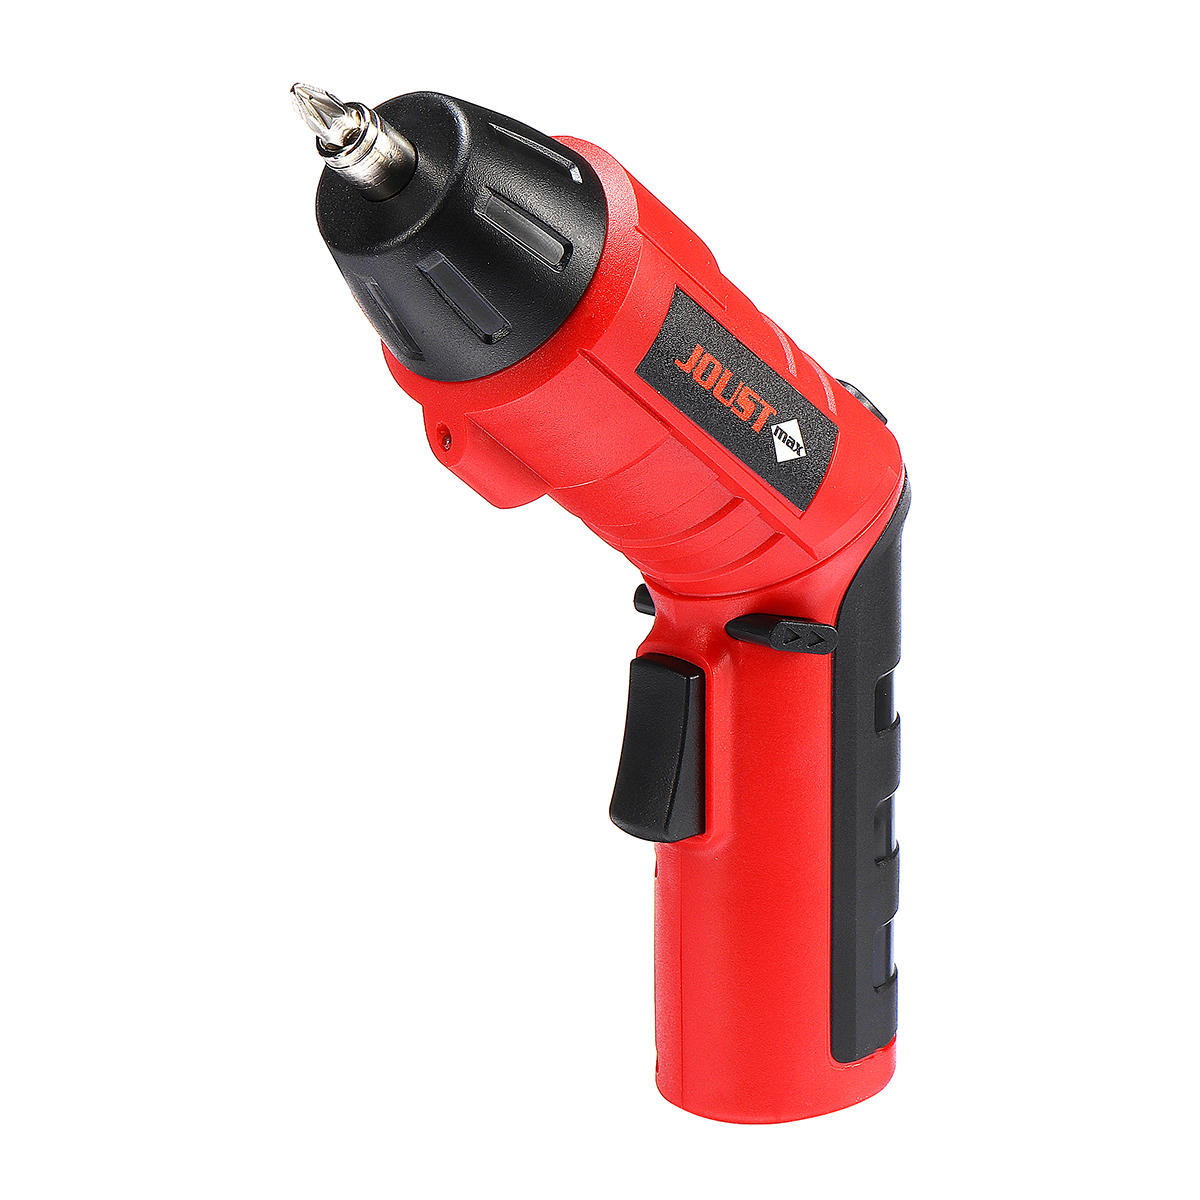 Tonfon 3.6V Cordless Electric Screwdriver USB Rechargable Power Screw Driver with Screw Bits - 3